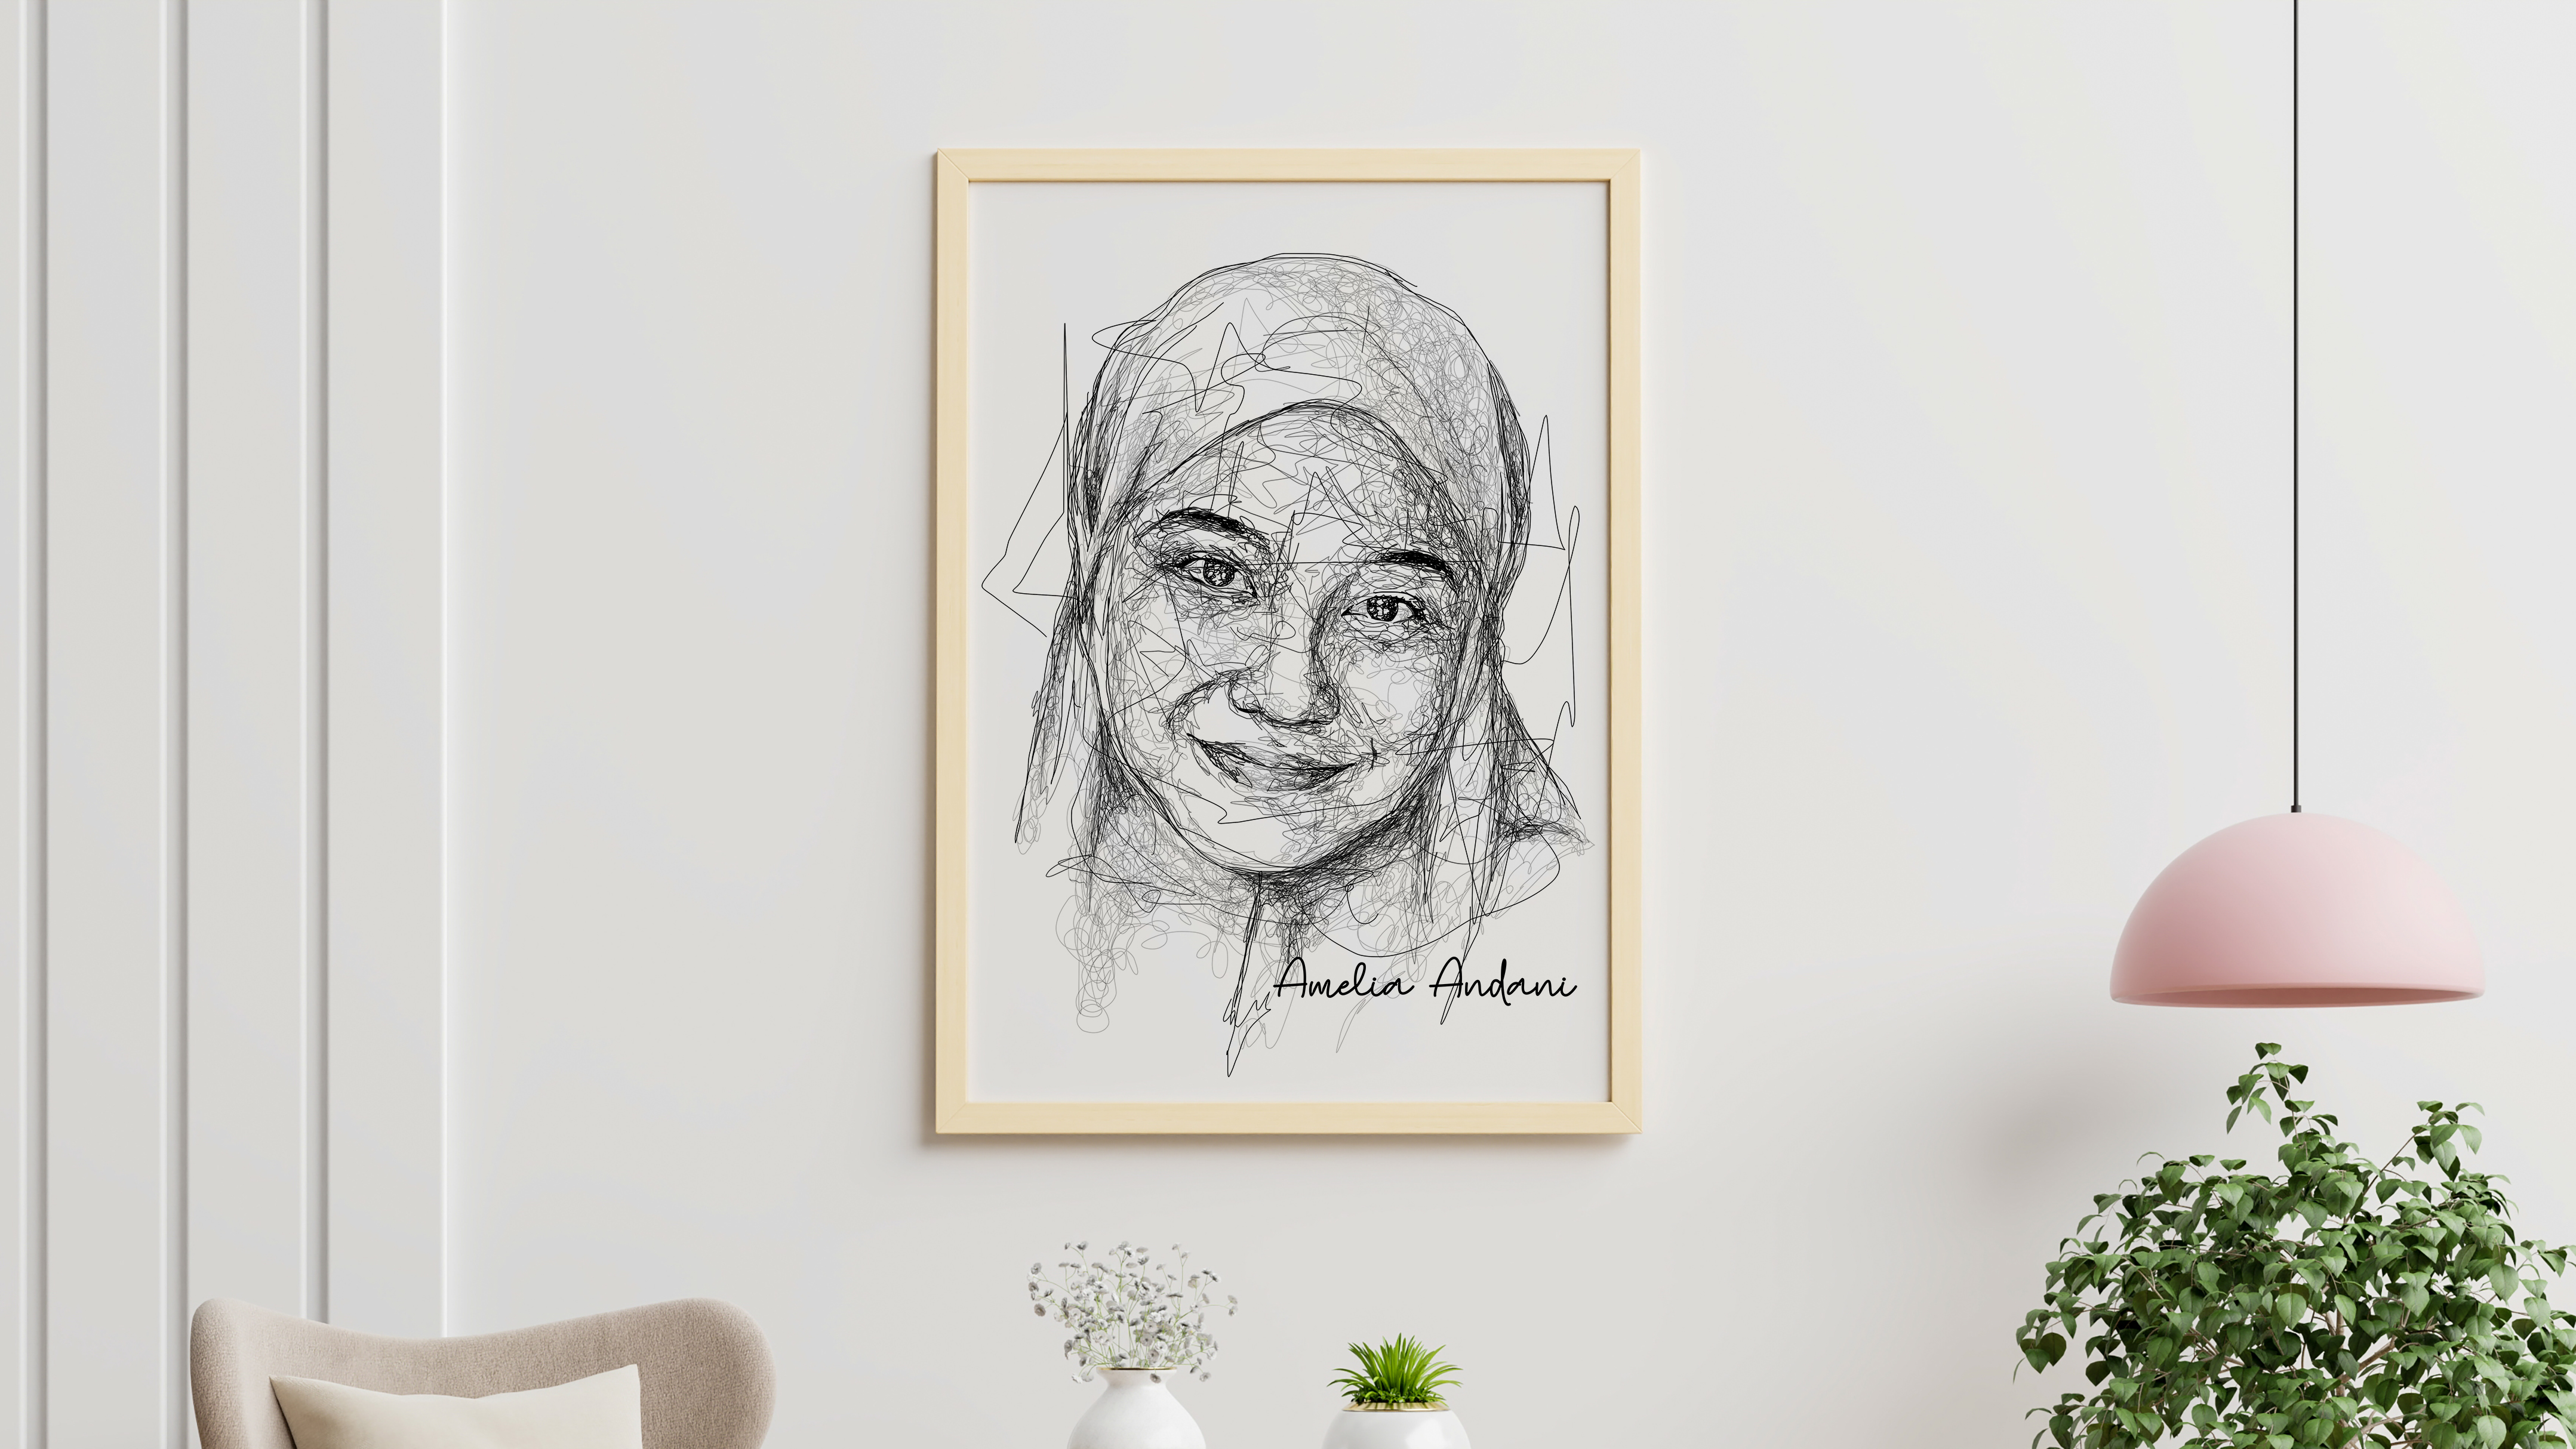 I will draw your scribble art portrait with my line style